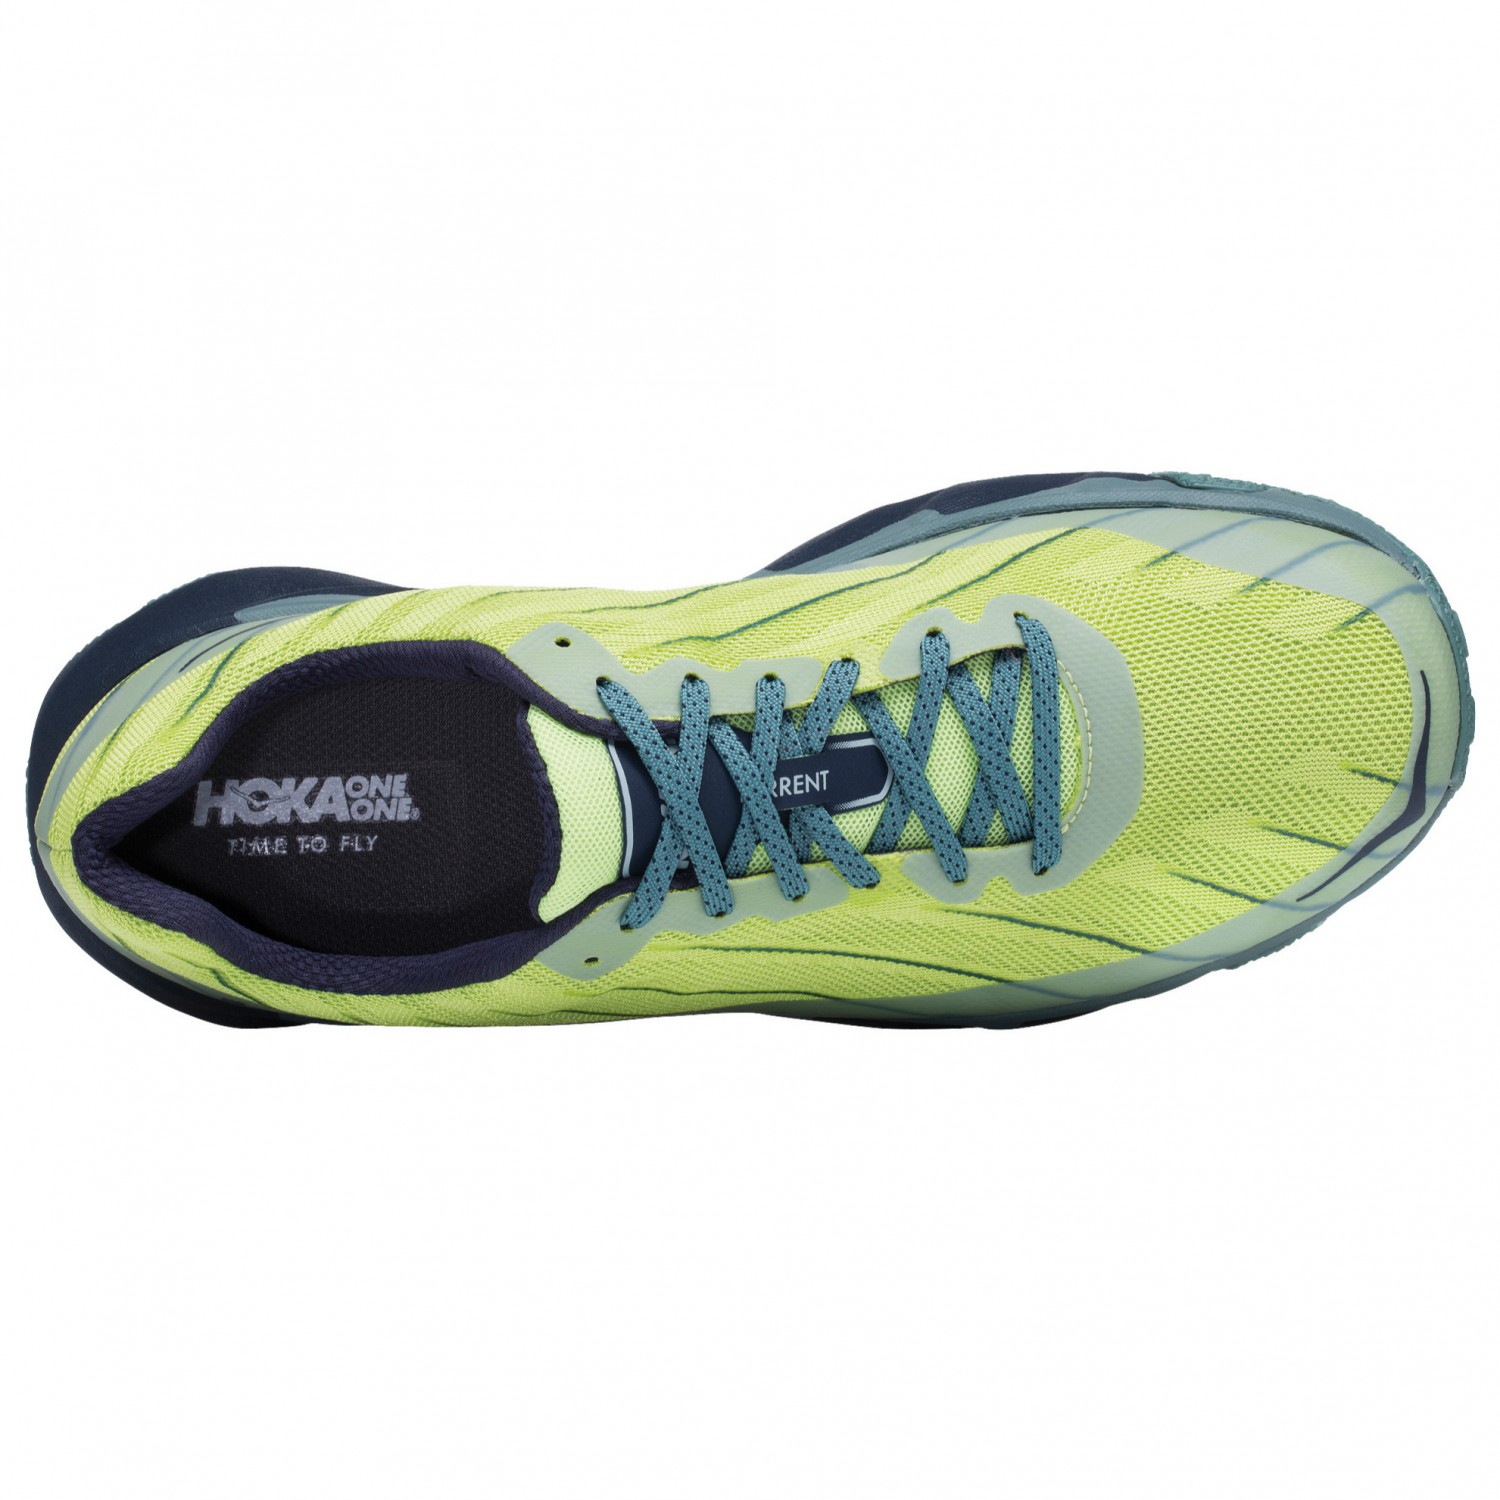 ... Hoka One One - Torrent - Trail running shoes ... f9ade1916b7